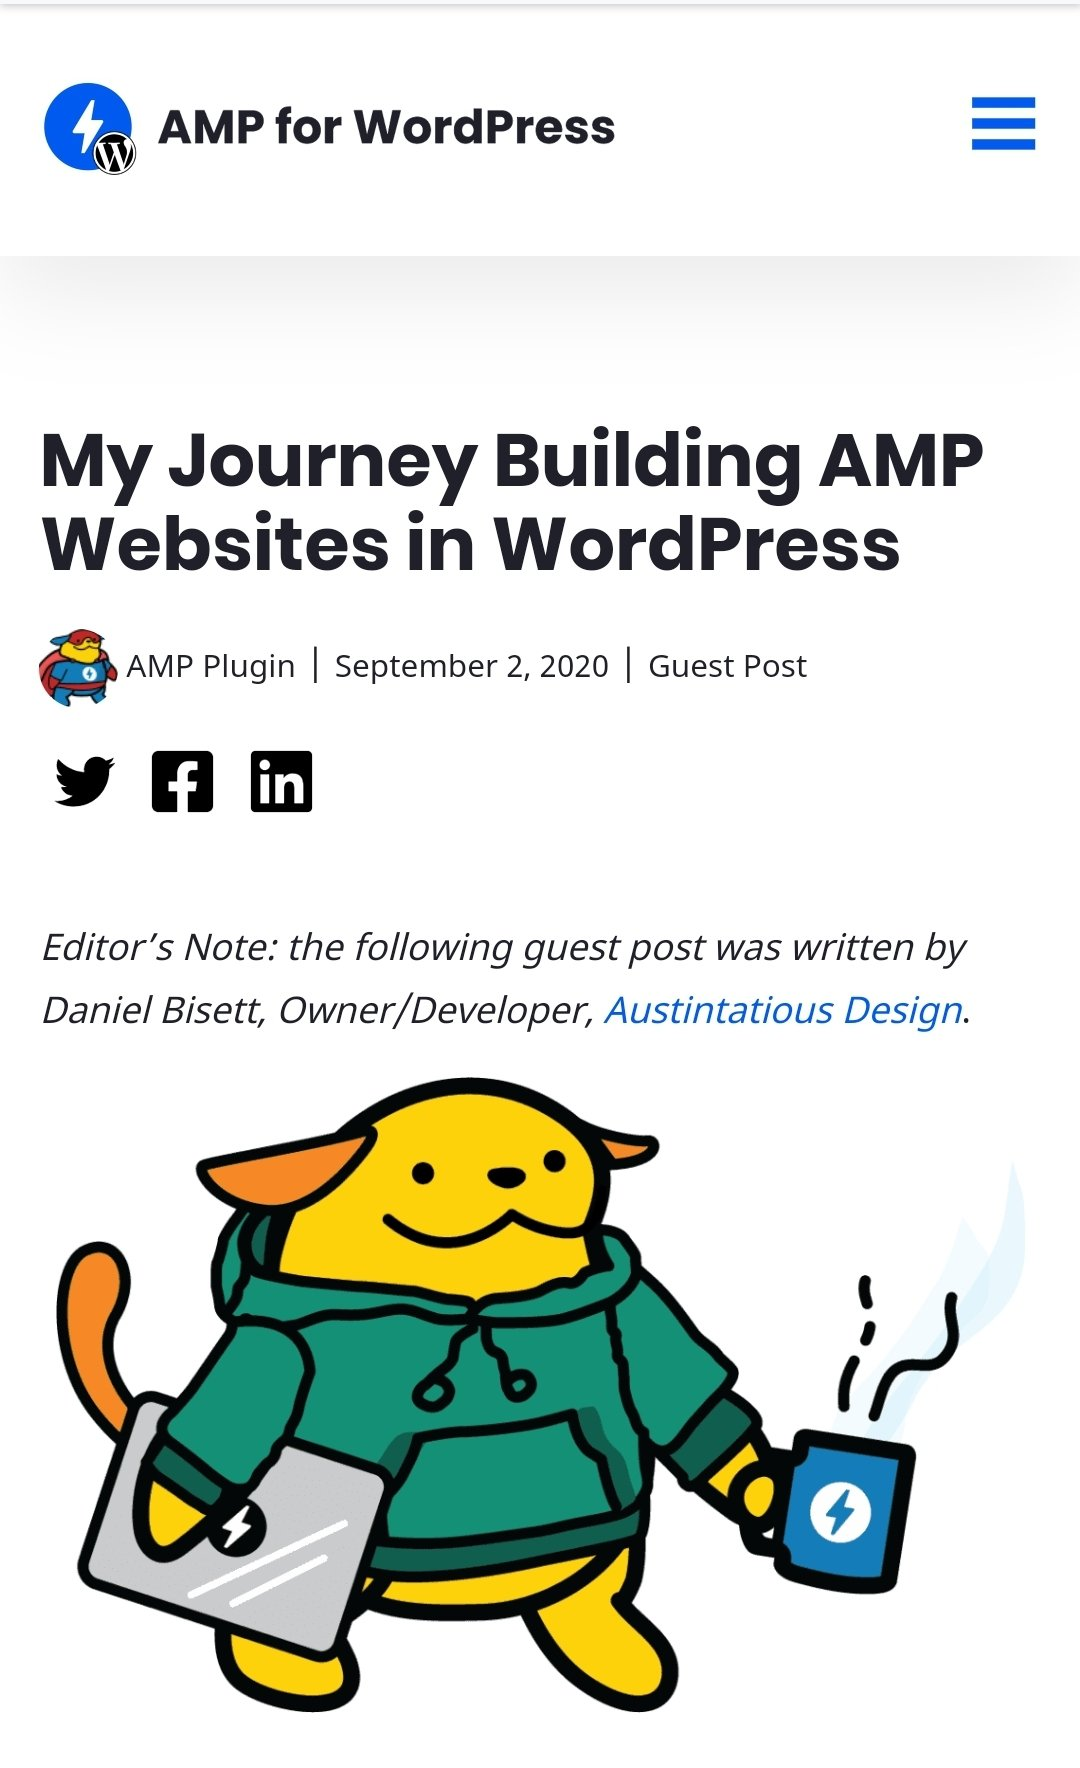 My Journey Building AMP Websites in WordPress for Austintatious Design Co